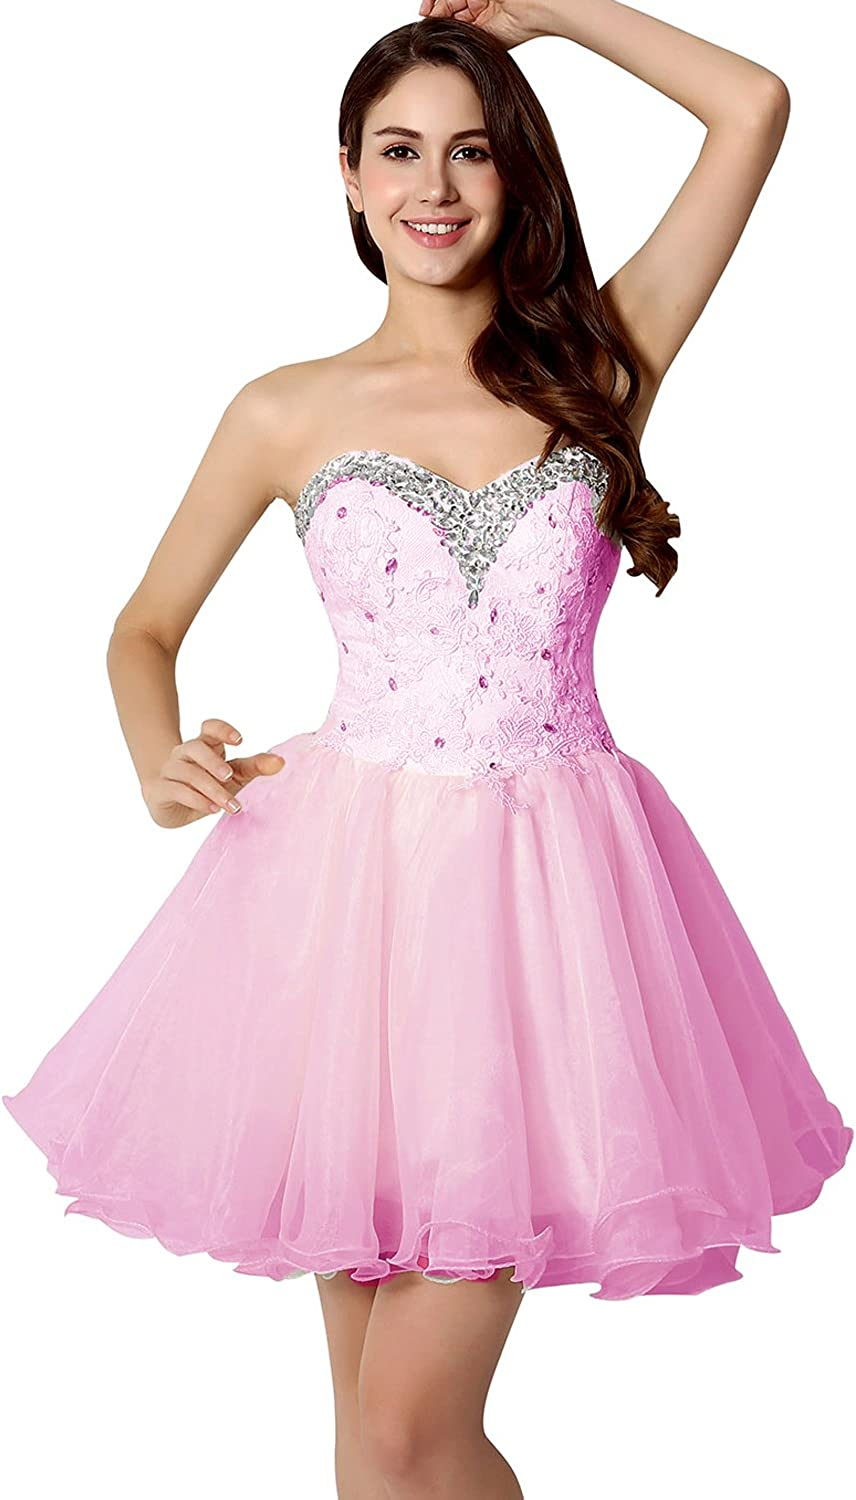 Belle House Tulle Homecoming Dresses for Juniors Short Prom Party Dresses Beaded Graduation Ball Gown